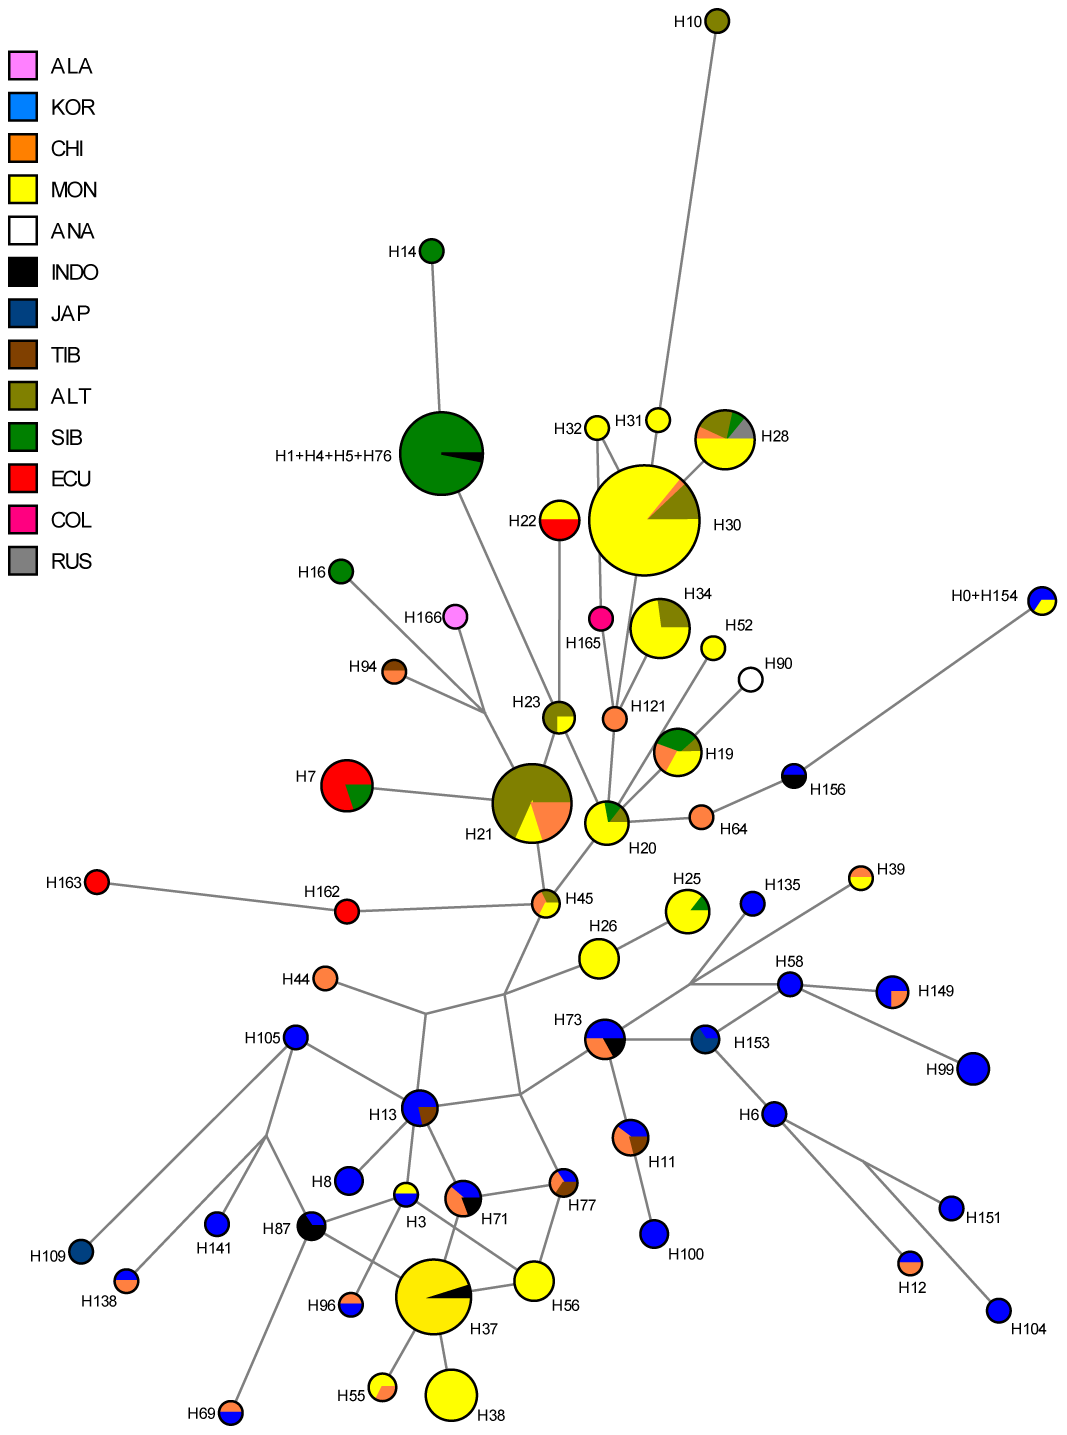 Median-joining network of 167 different Asian and American Y-STR haplotypes carrying Y-SNP haplogroup C3* (from this and previously published studies).